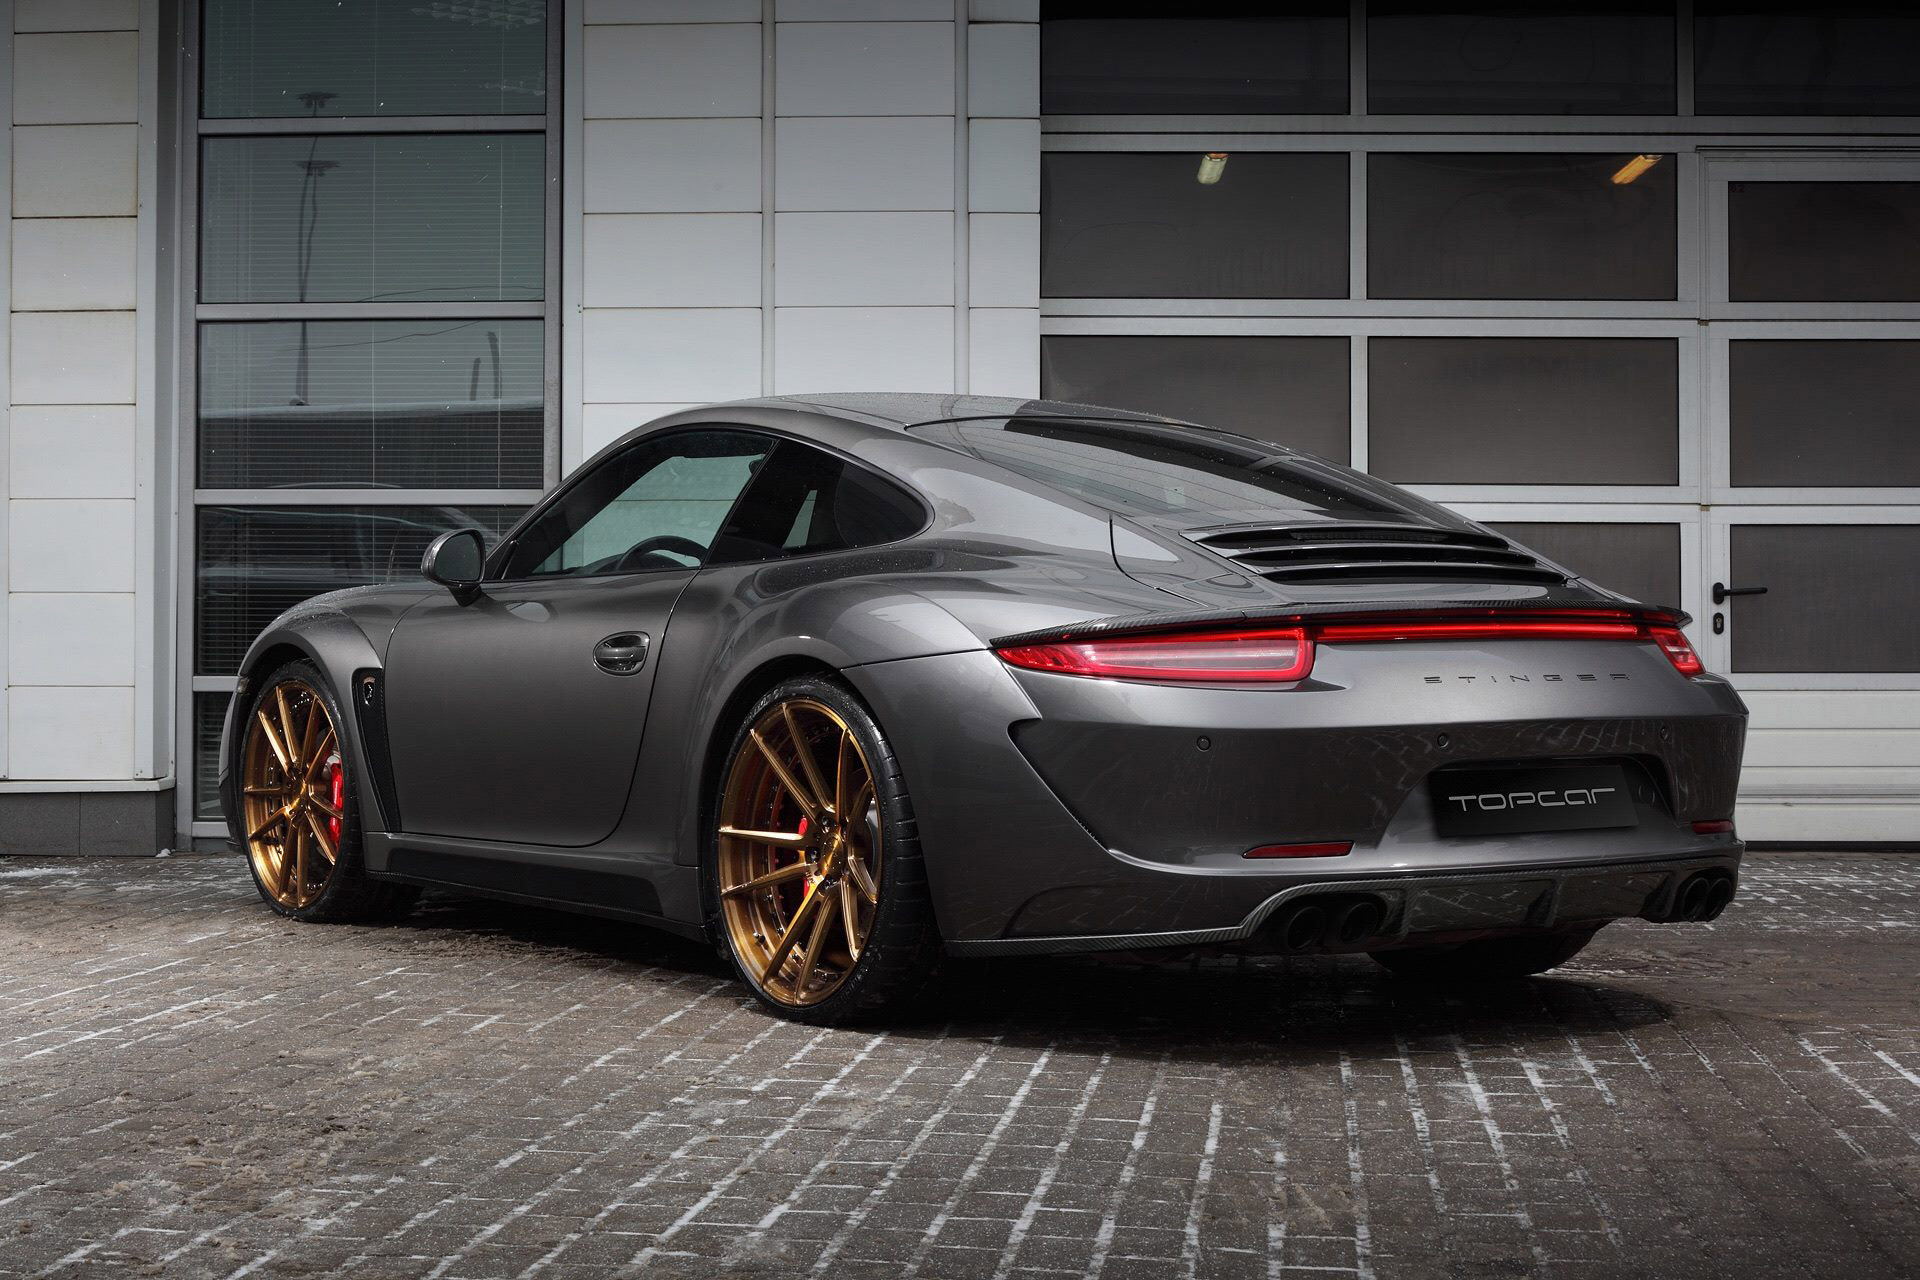 Porsche 991 Carrera 4s With Stinger Body Kit By Topcar